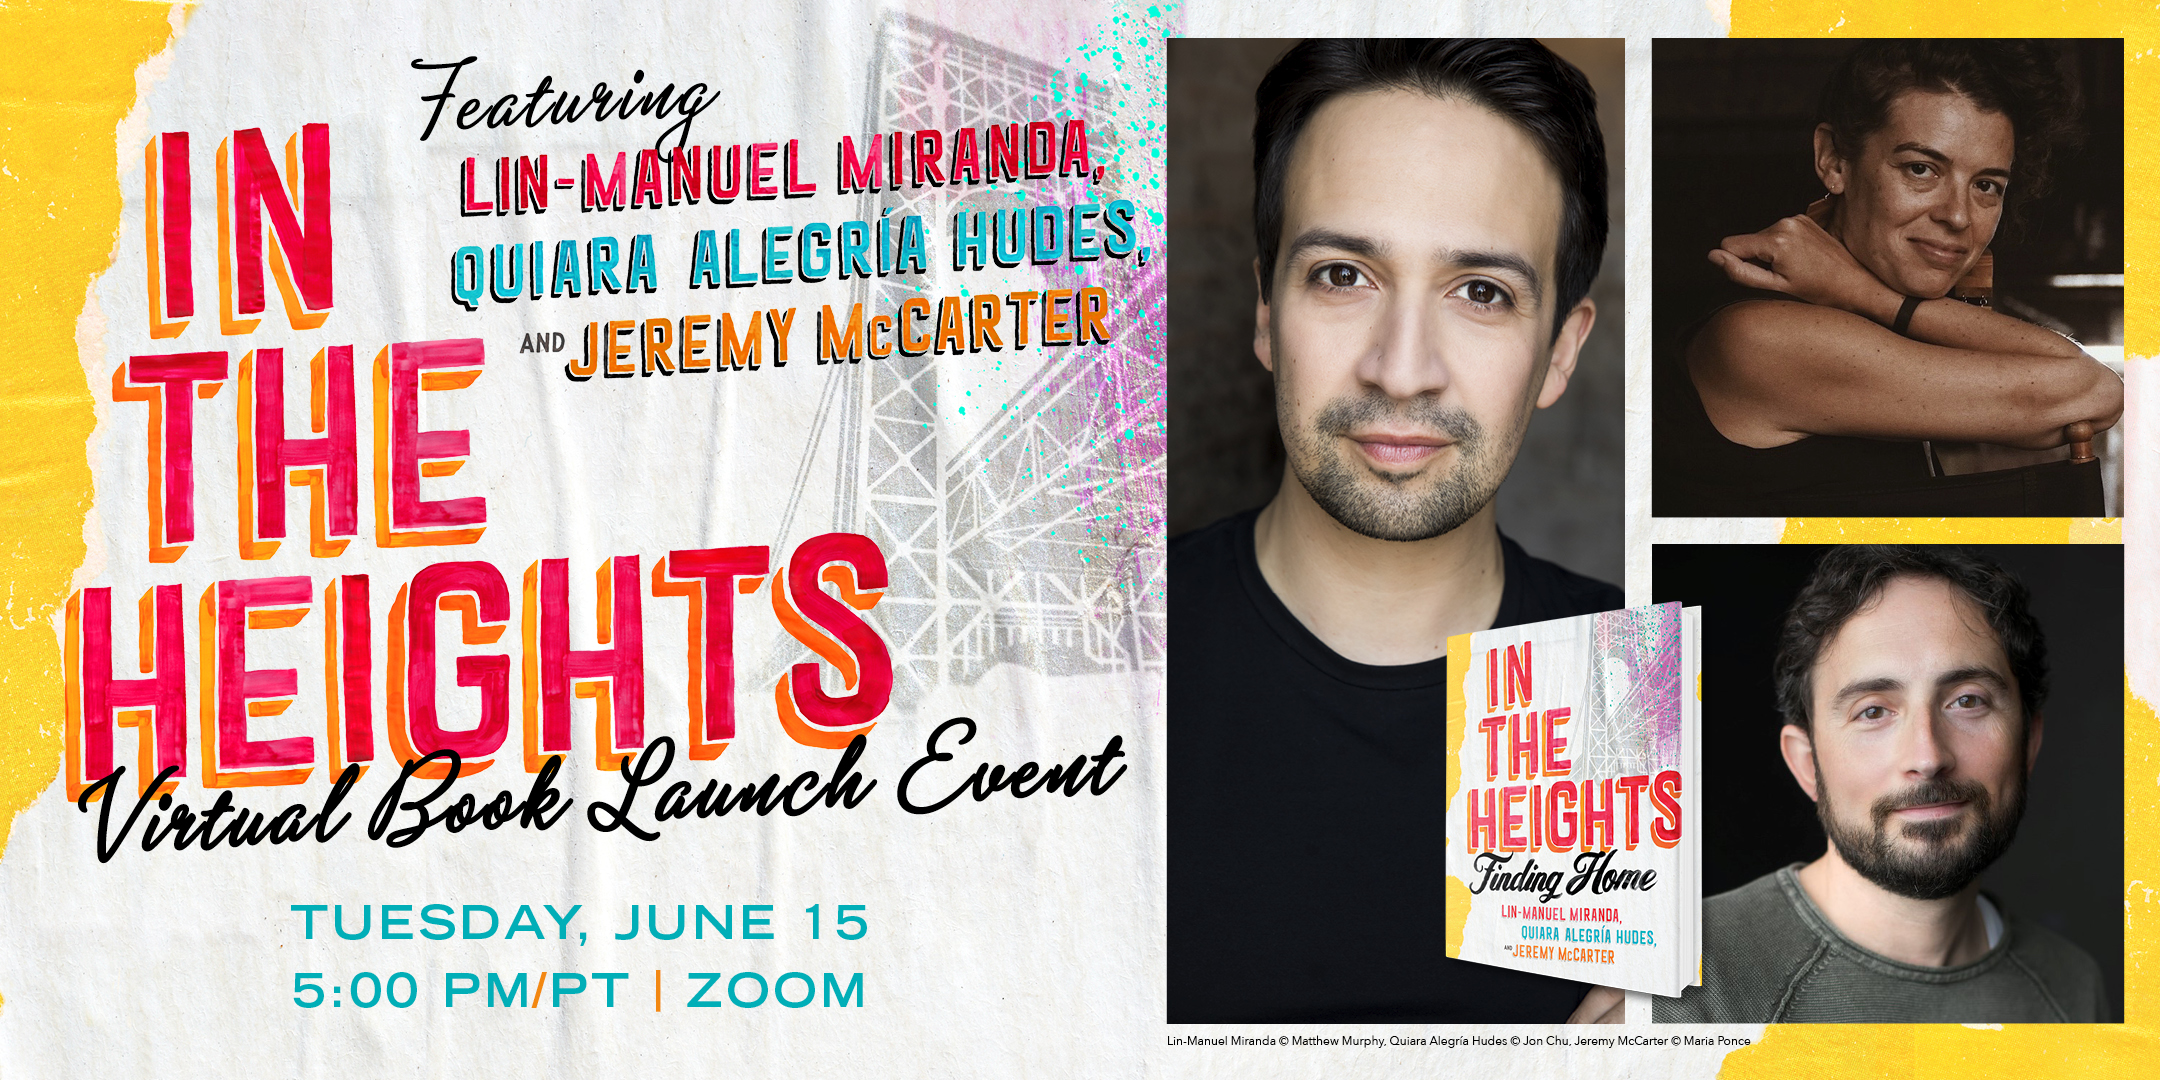 In The Heights: Virtual Book Launch Event with Lin-Manuel Miranda, Quiara Alegria Hudes, and Jeremy McCarter